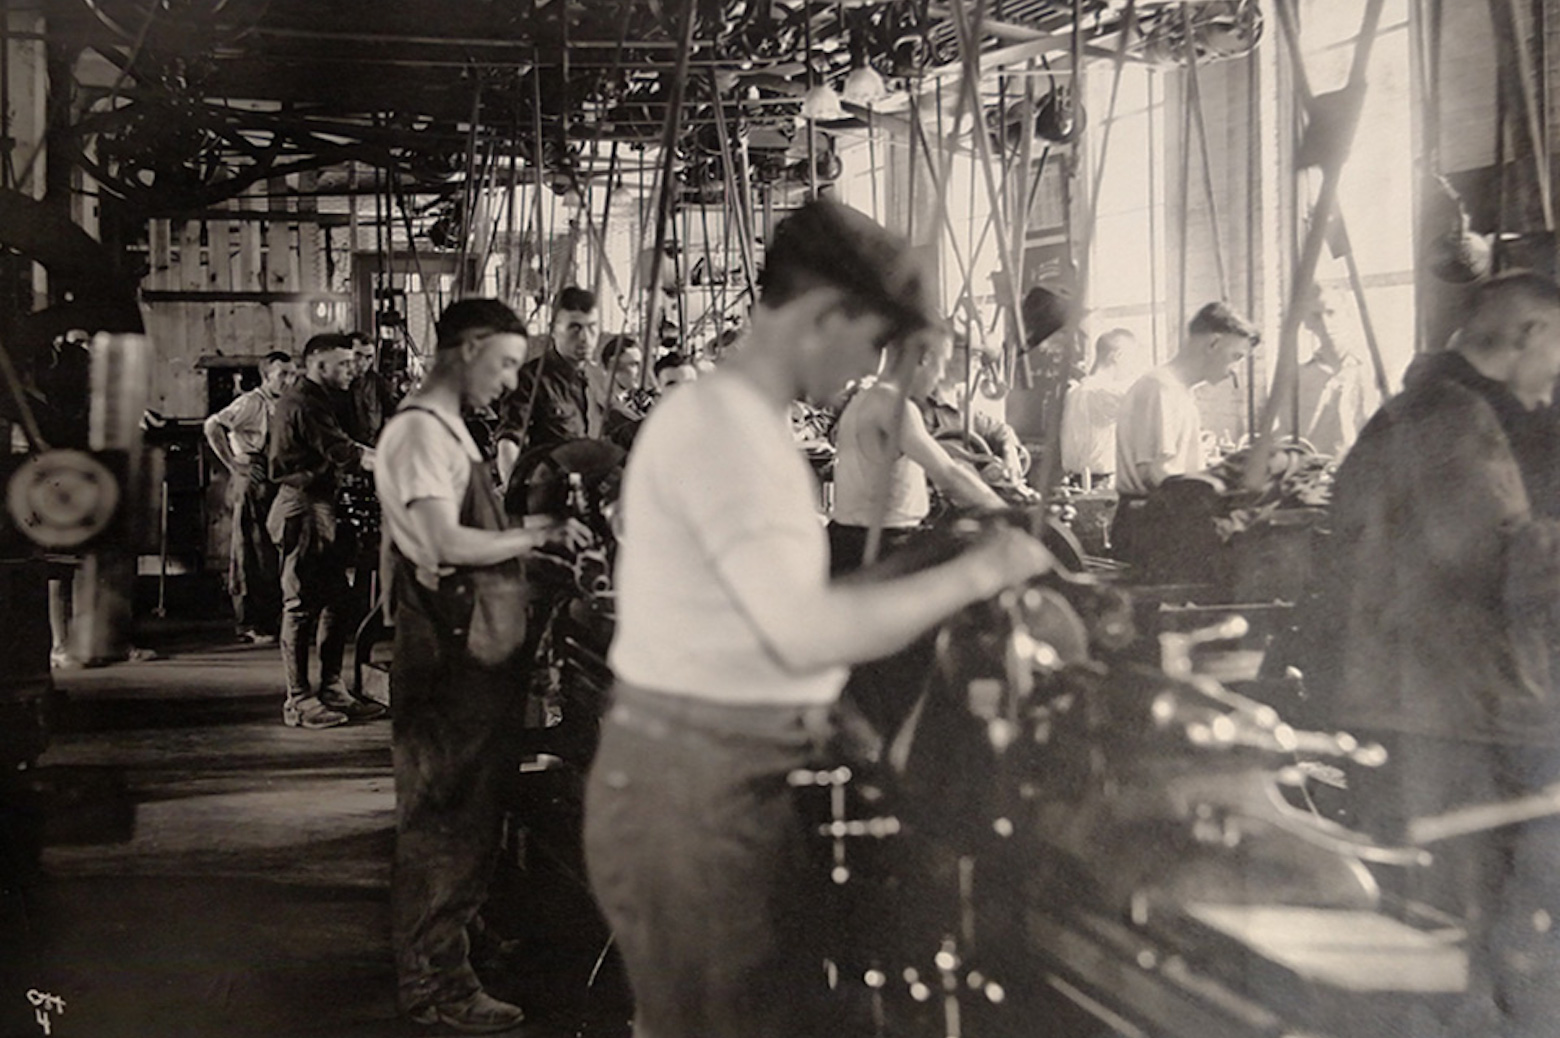 Men working on cars in an assembly line